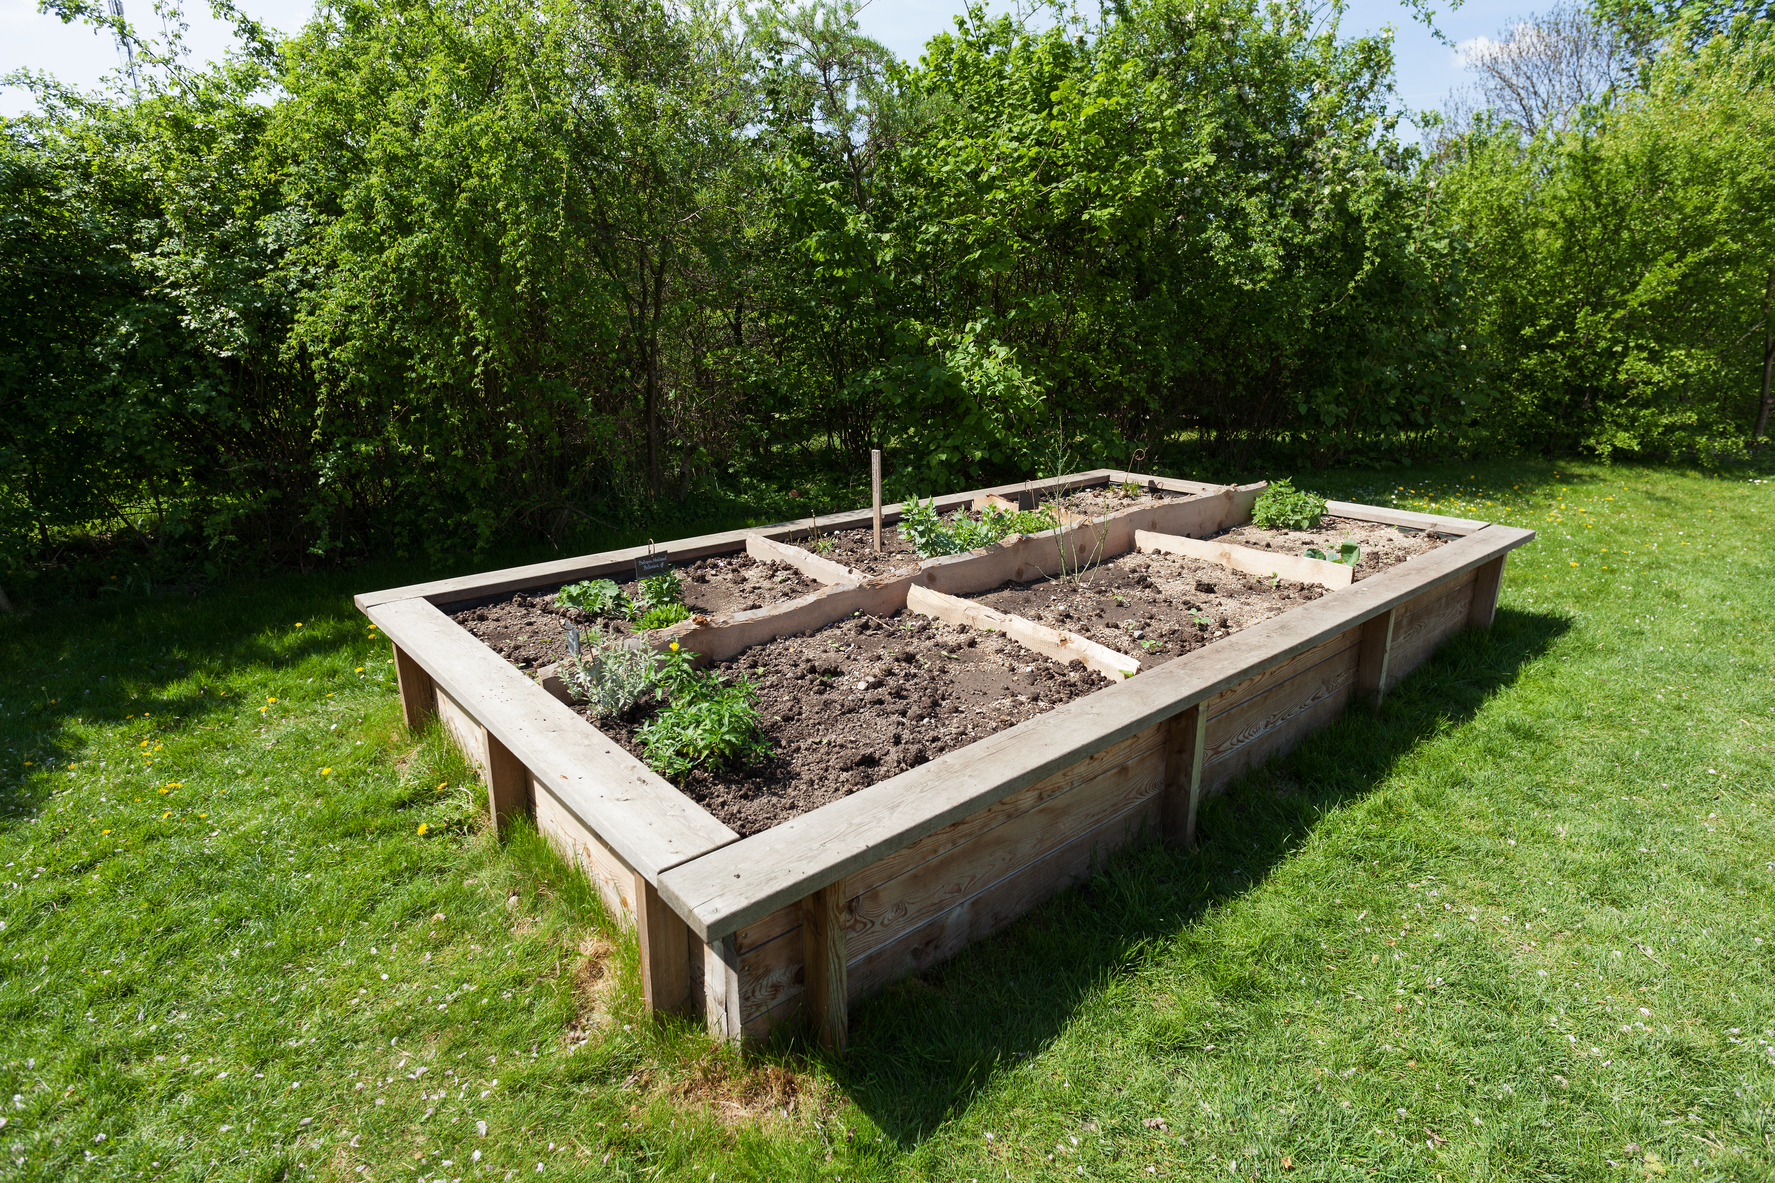 Merveilleux How To Build A Raised Garden Bed: Planning, Building, And Planting | The  Old Farmeru0027s Almanac